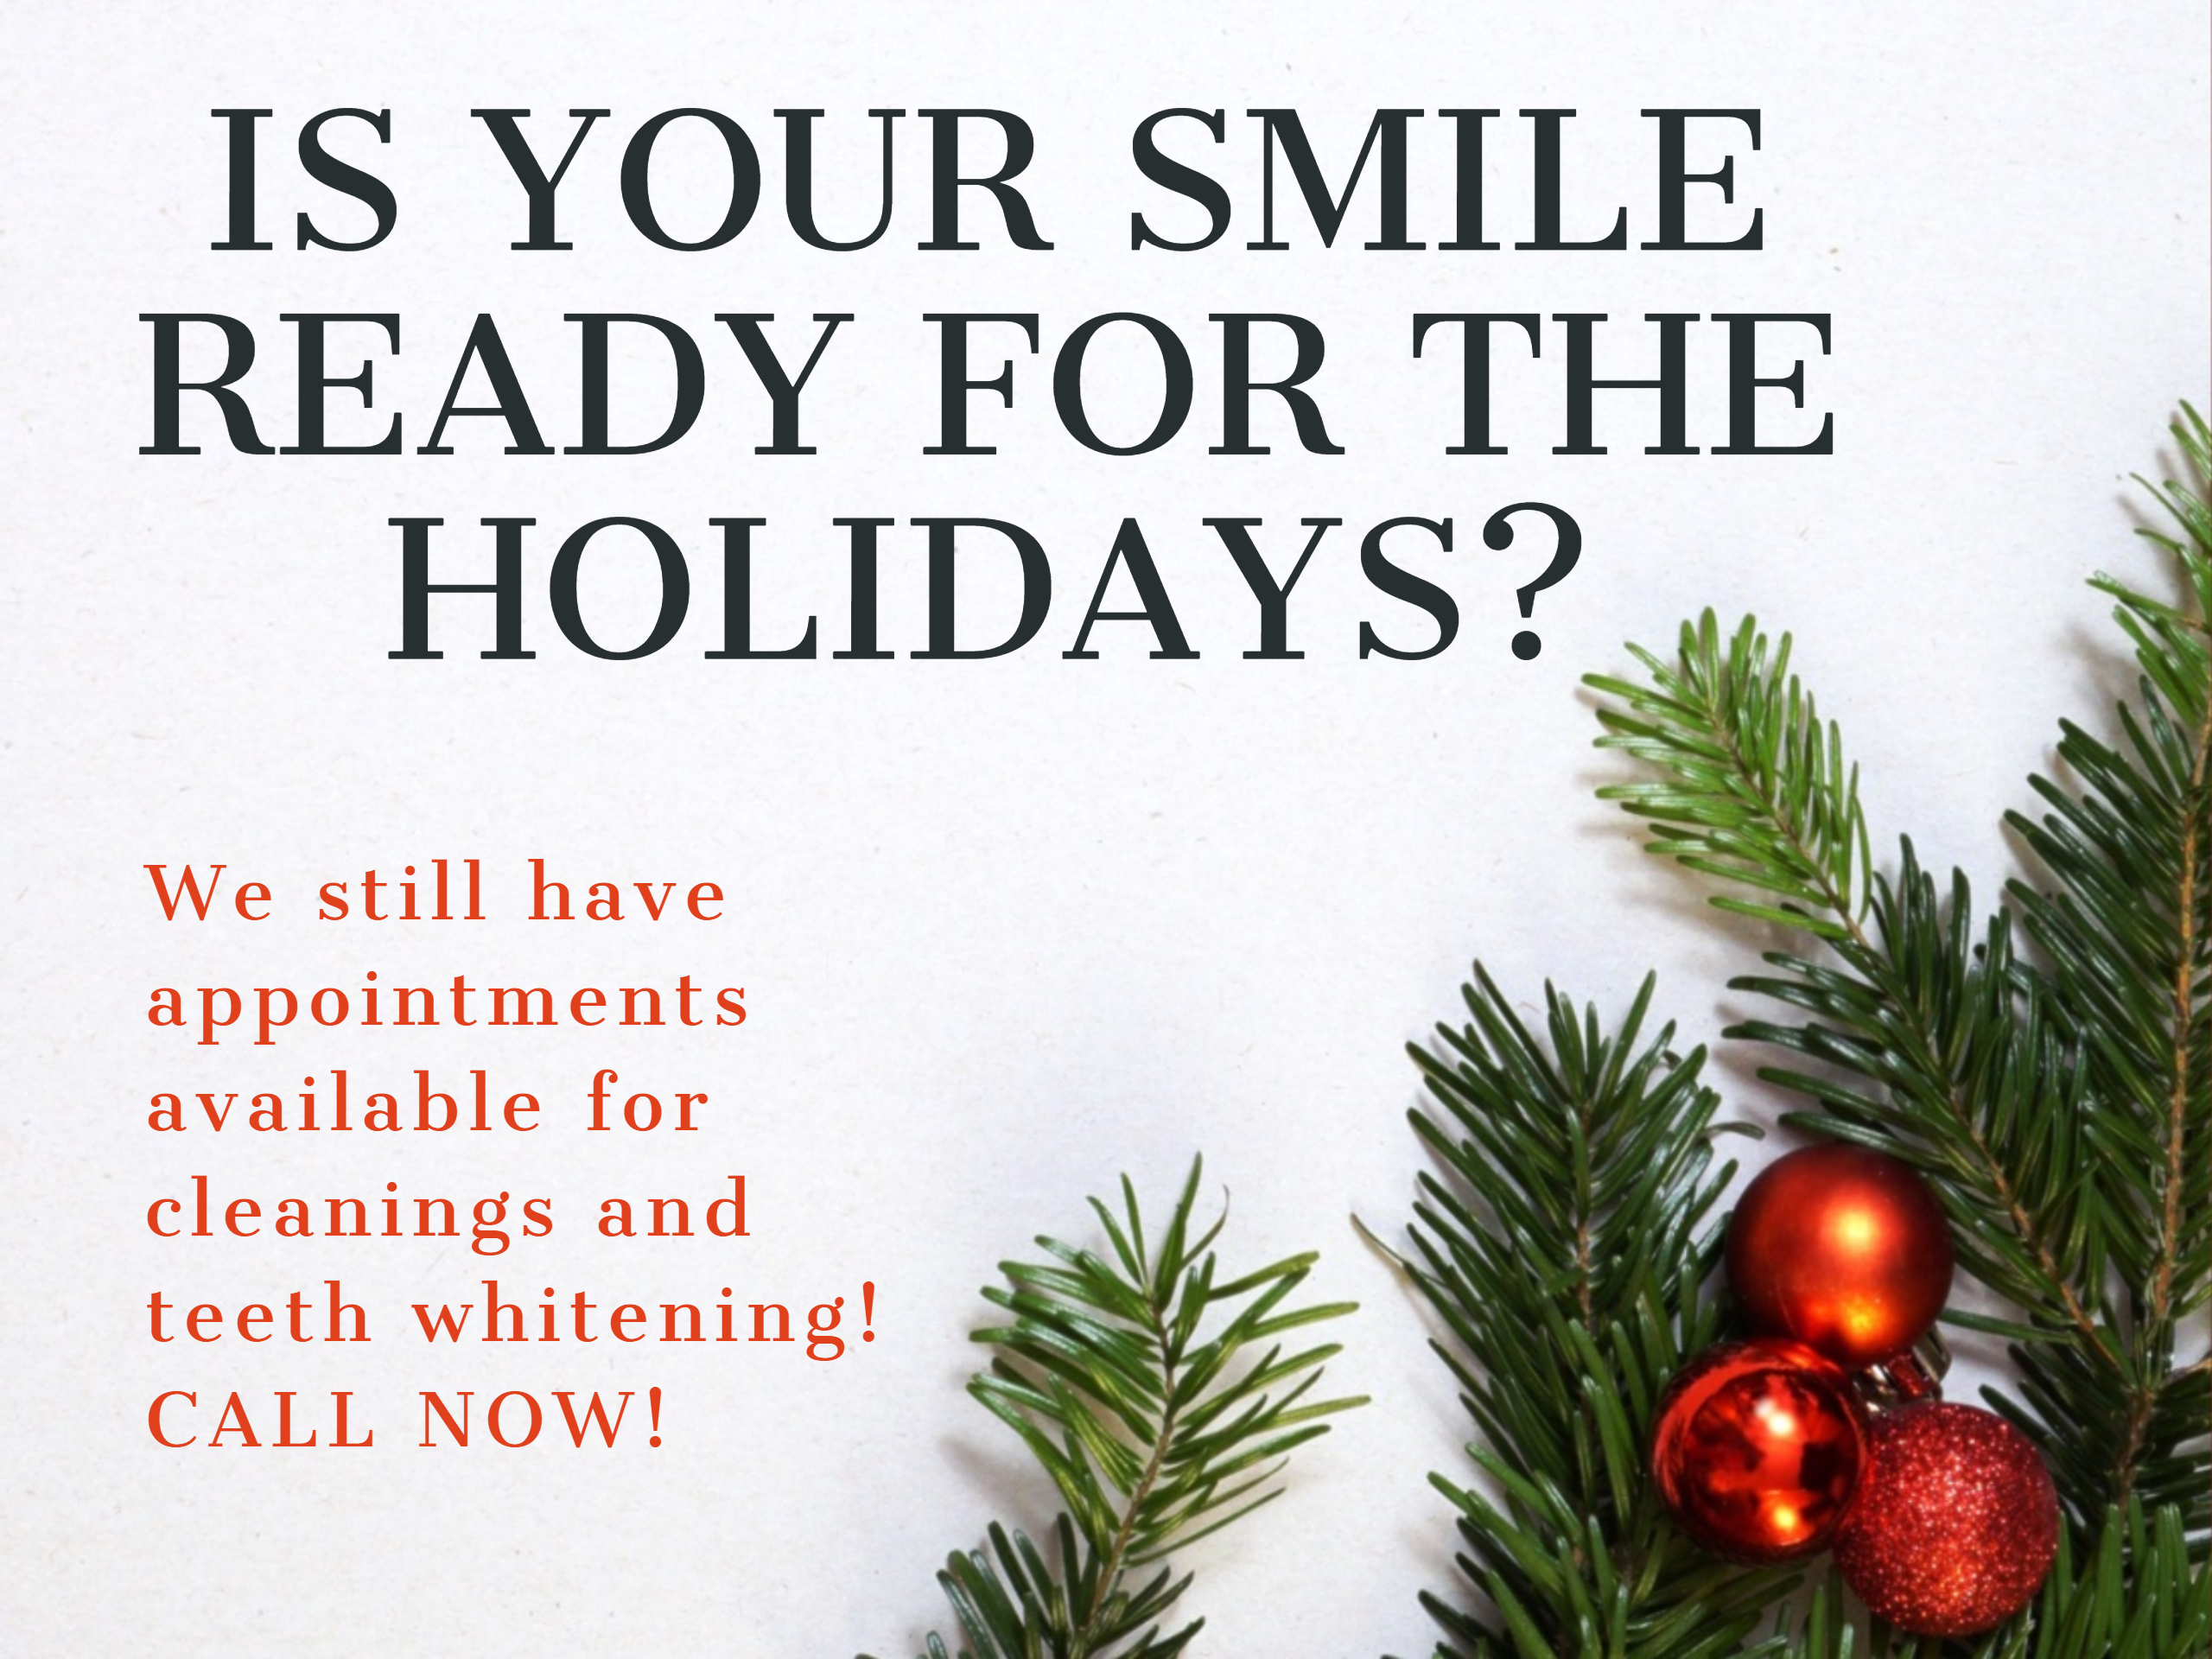 We all want to have a nice smile for the holidays. Make sure your's is ready by scheduling an appointment today!